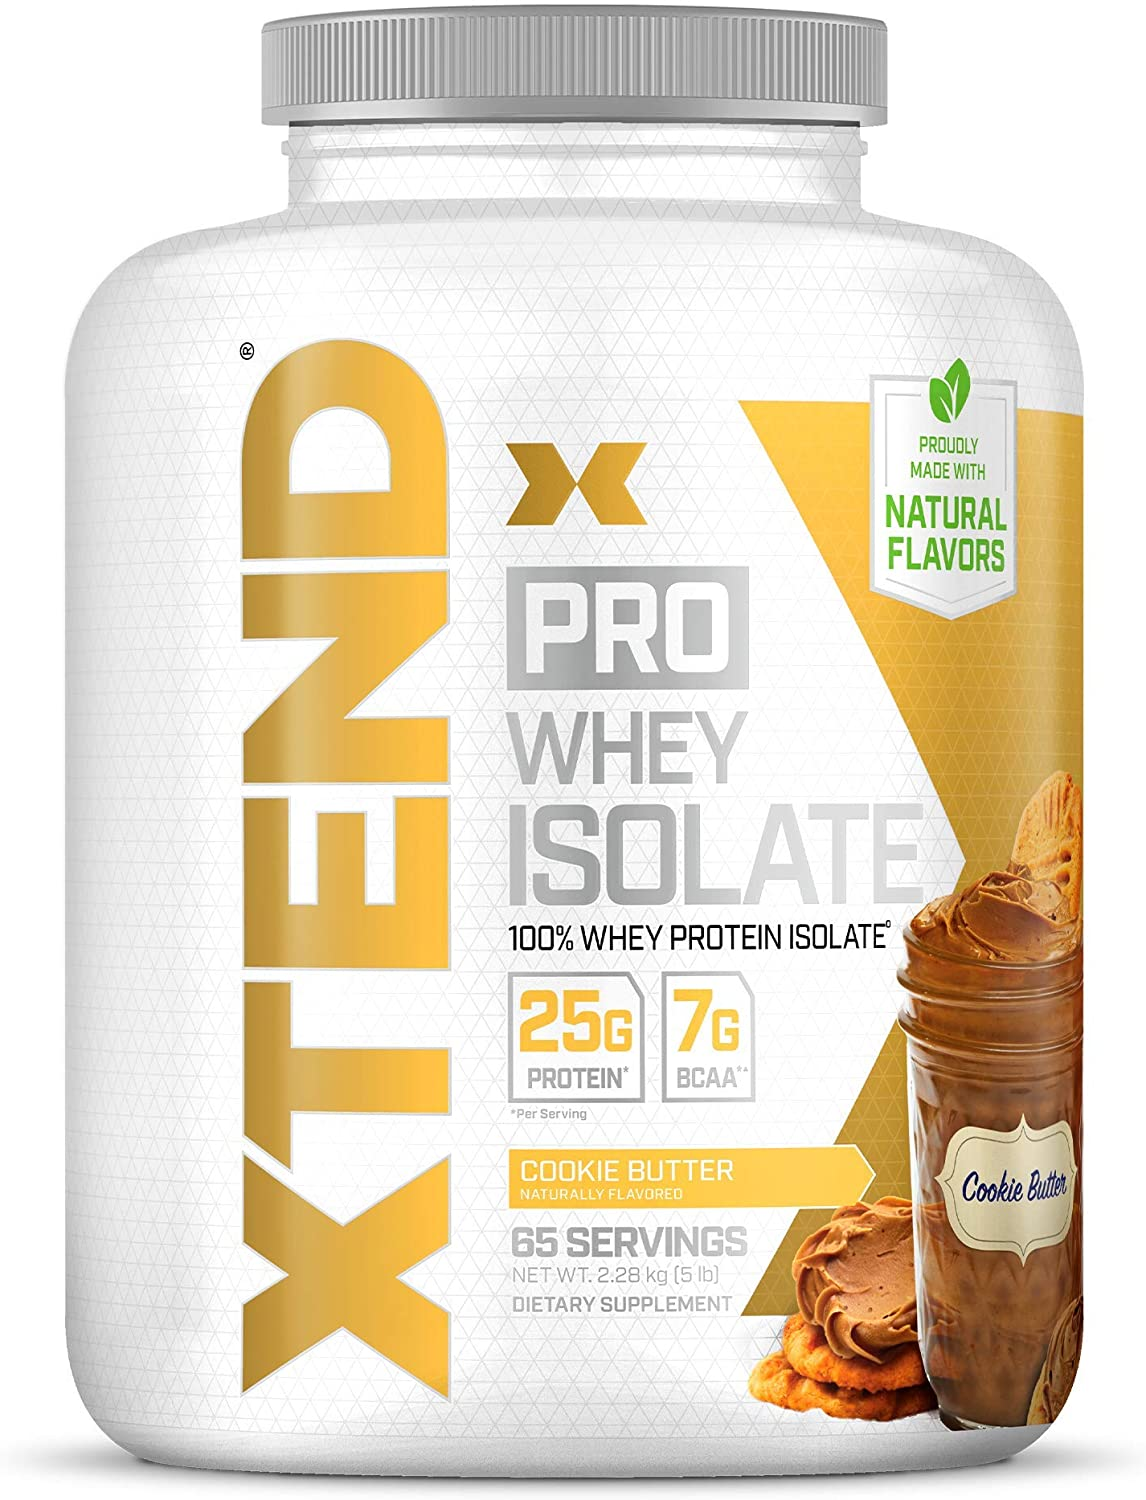 XTEND Pro Protein Powder Cookie Butter   100% Whey Protein Isolate   Keto Friendly + 7g BCAAs with Natural Flavors   Gluten Free Low Fat Post Workout Drink   5lbs